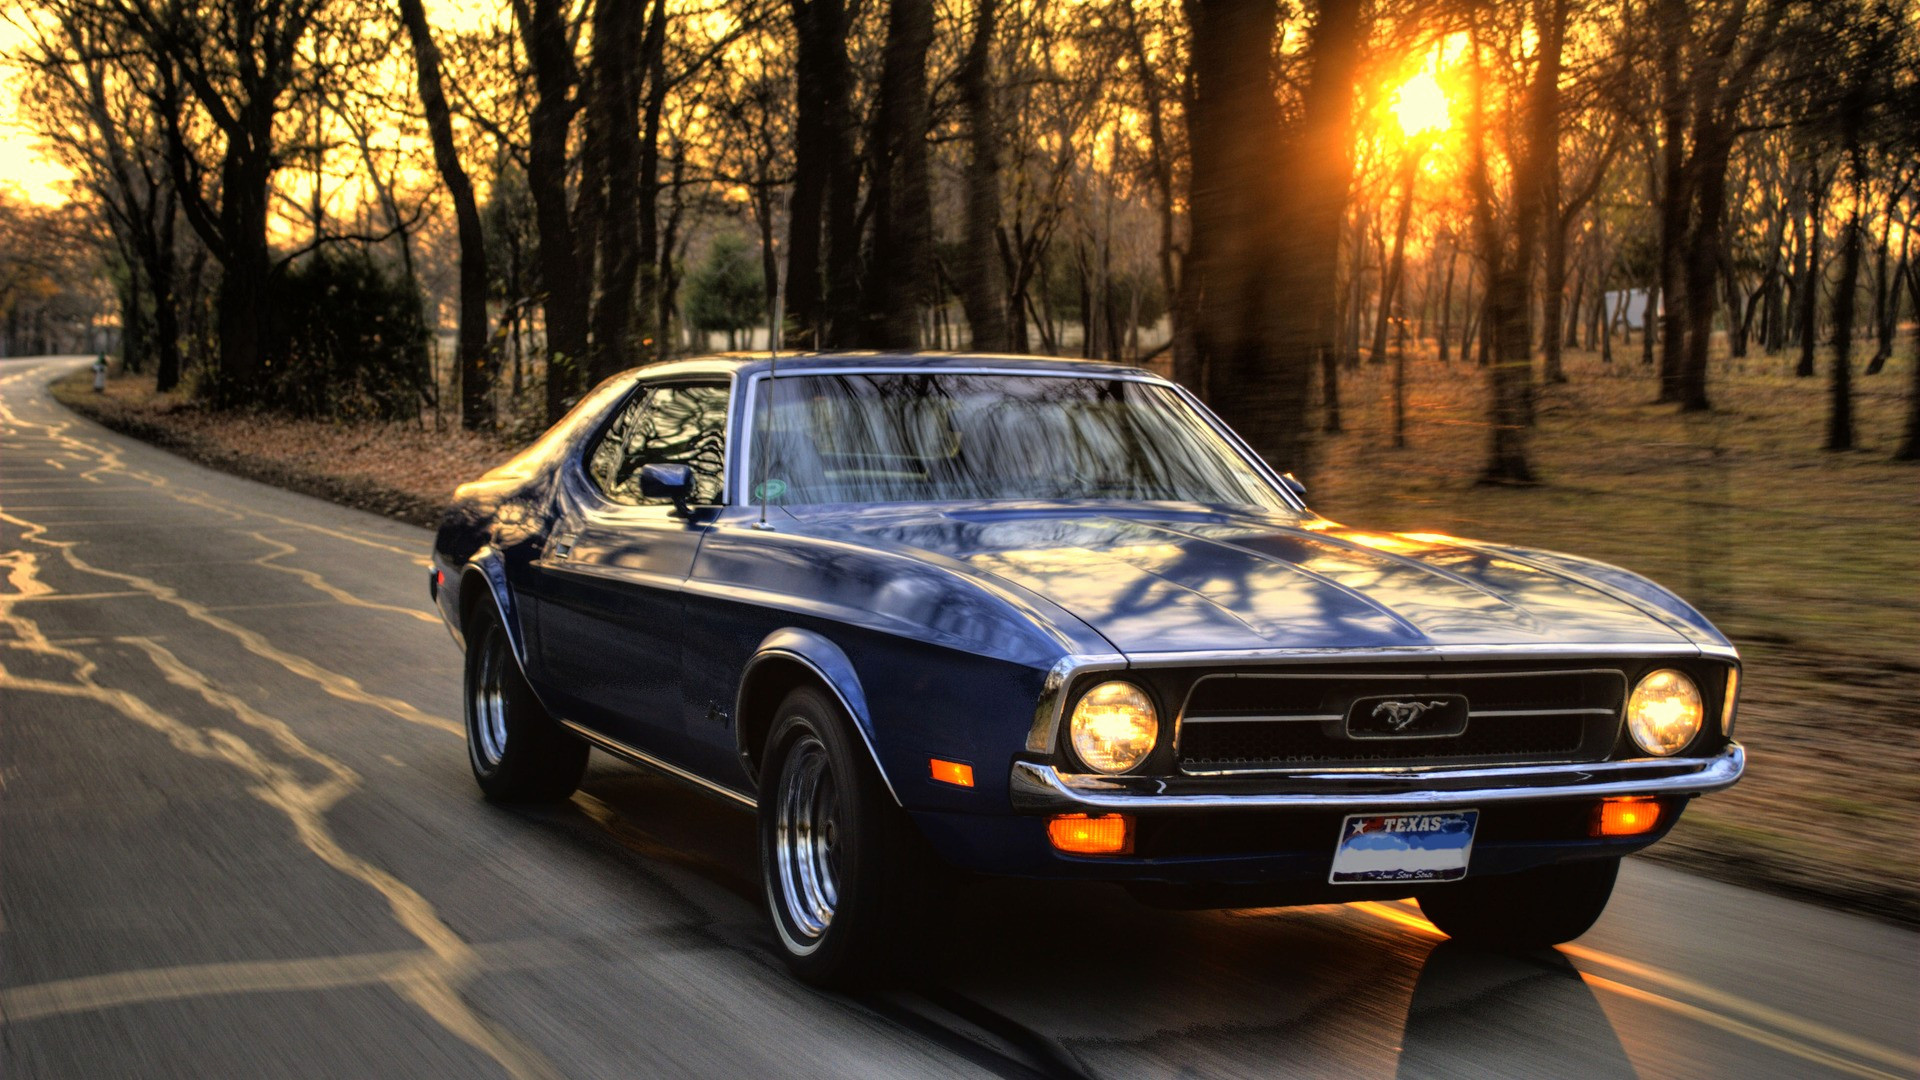 1920x1080 American Muscle Car Wallpaper Beautiful Muscle Car Wallpaper 31 Wujinshike